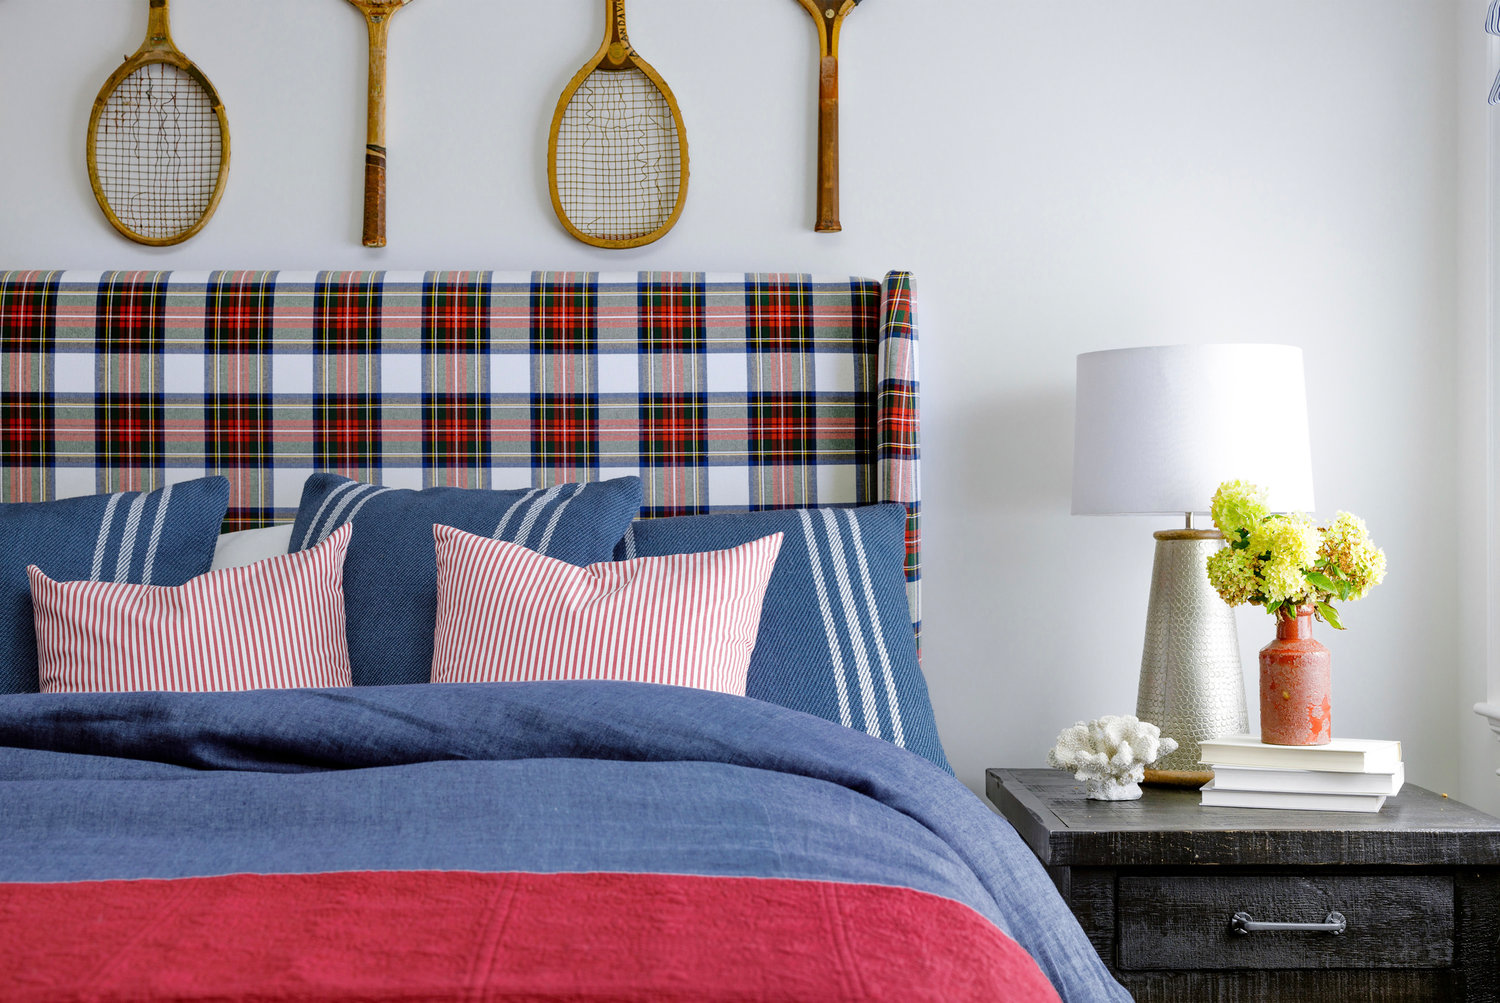 The tartan headboard and base lend instant collegiate spirit to this bedroom; a foursome of vintage tennis rackets make for inspired wall art with NPT ties